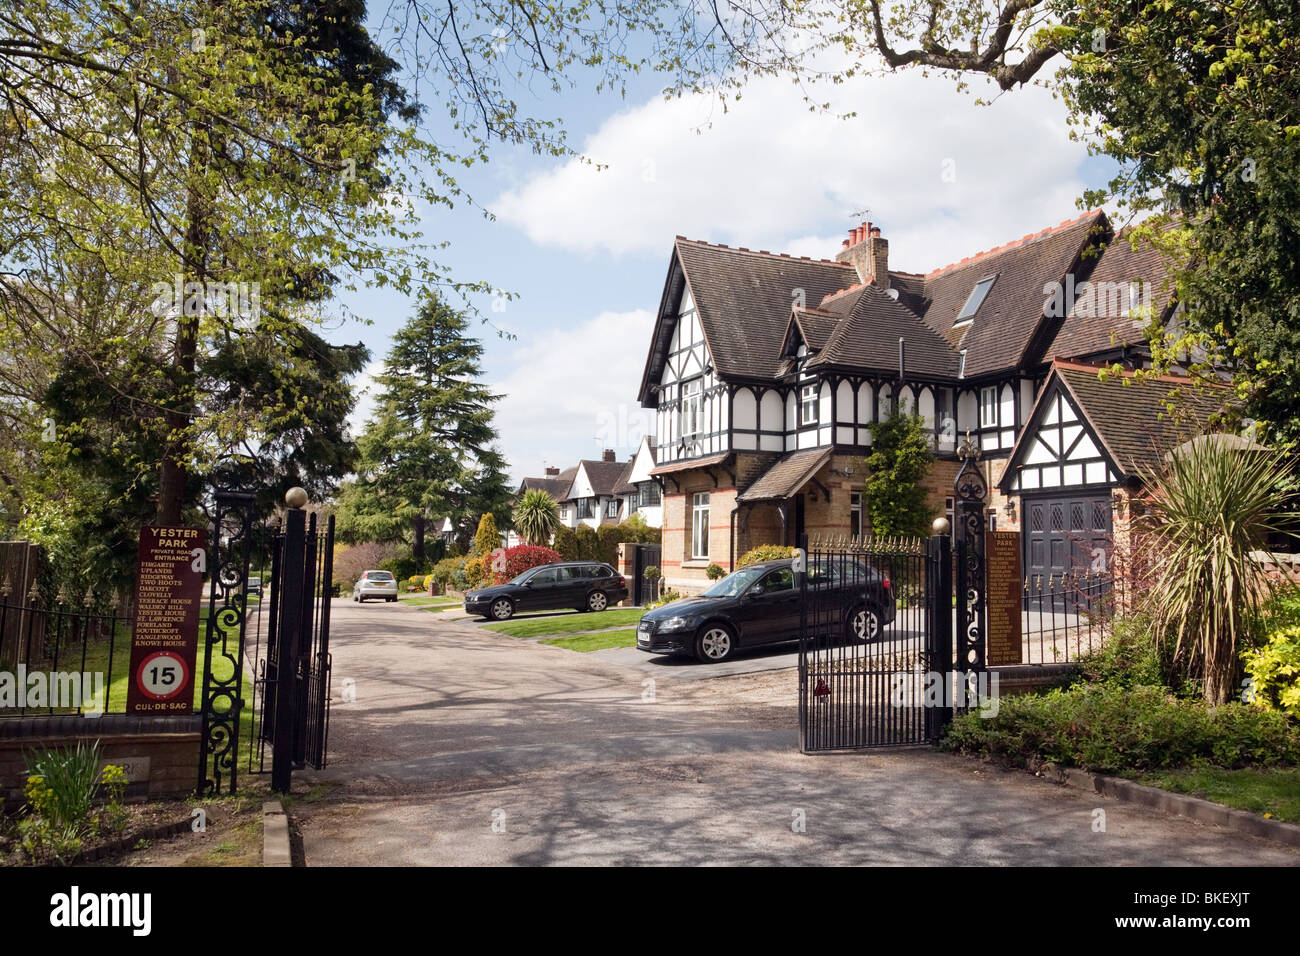 Expensive houses on a private road, Chislehurst, South East London, UK - Stock Image